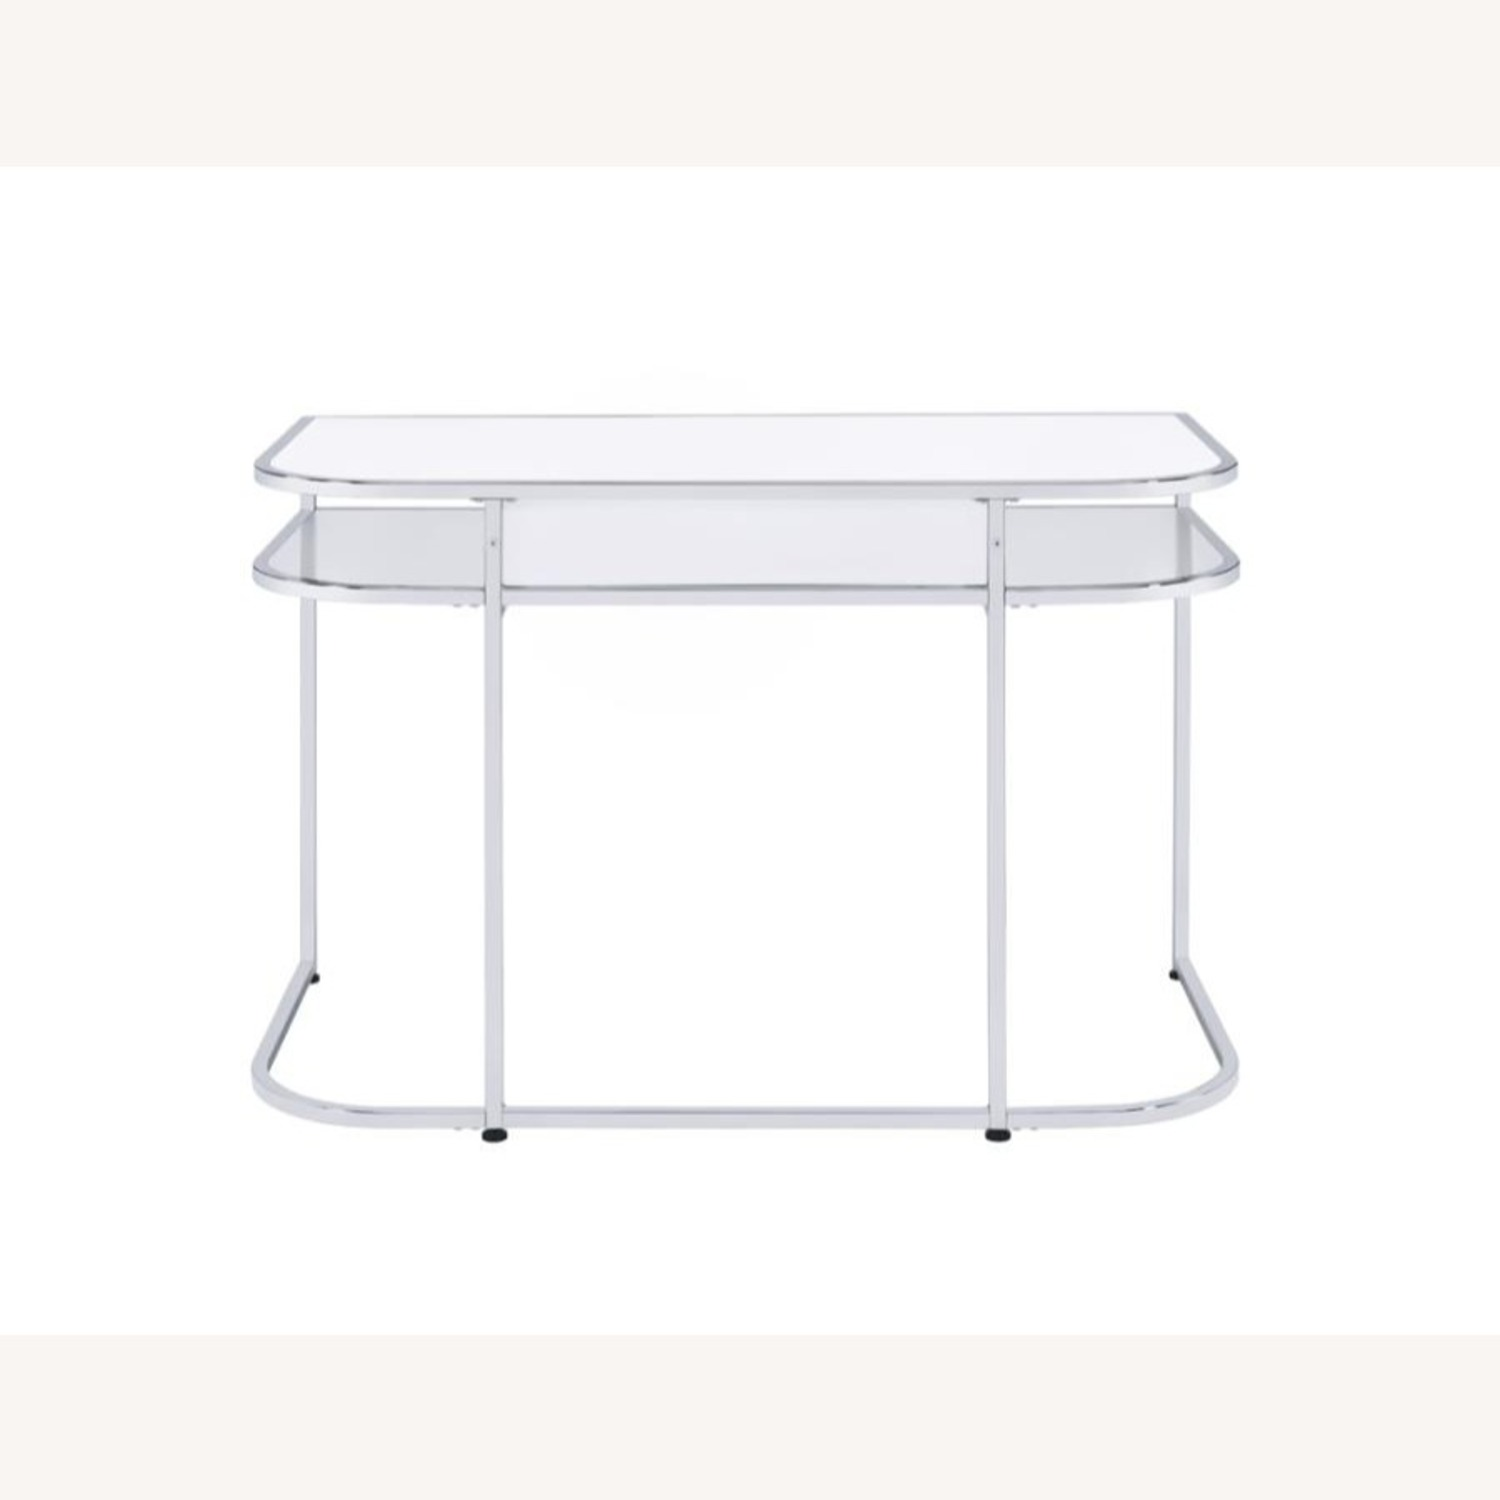 Writing Desk In White High Gloss Lacquer Finish - image-6